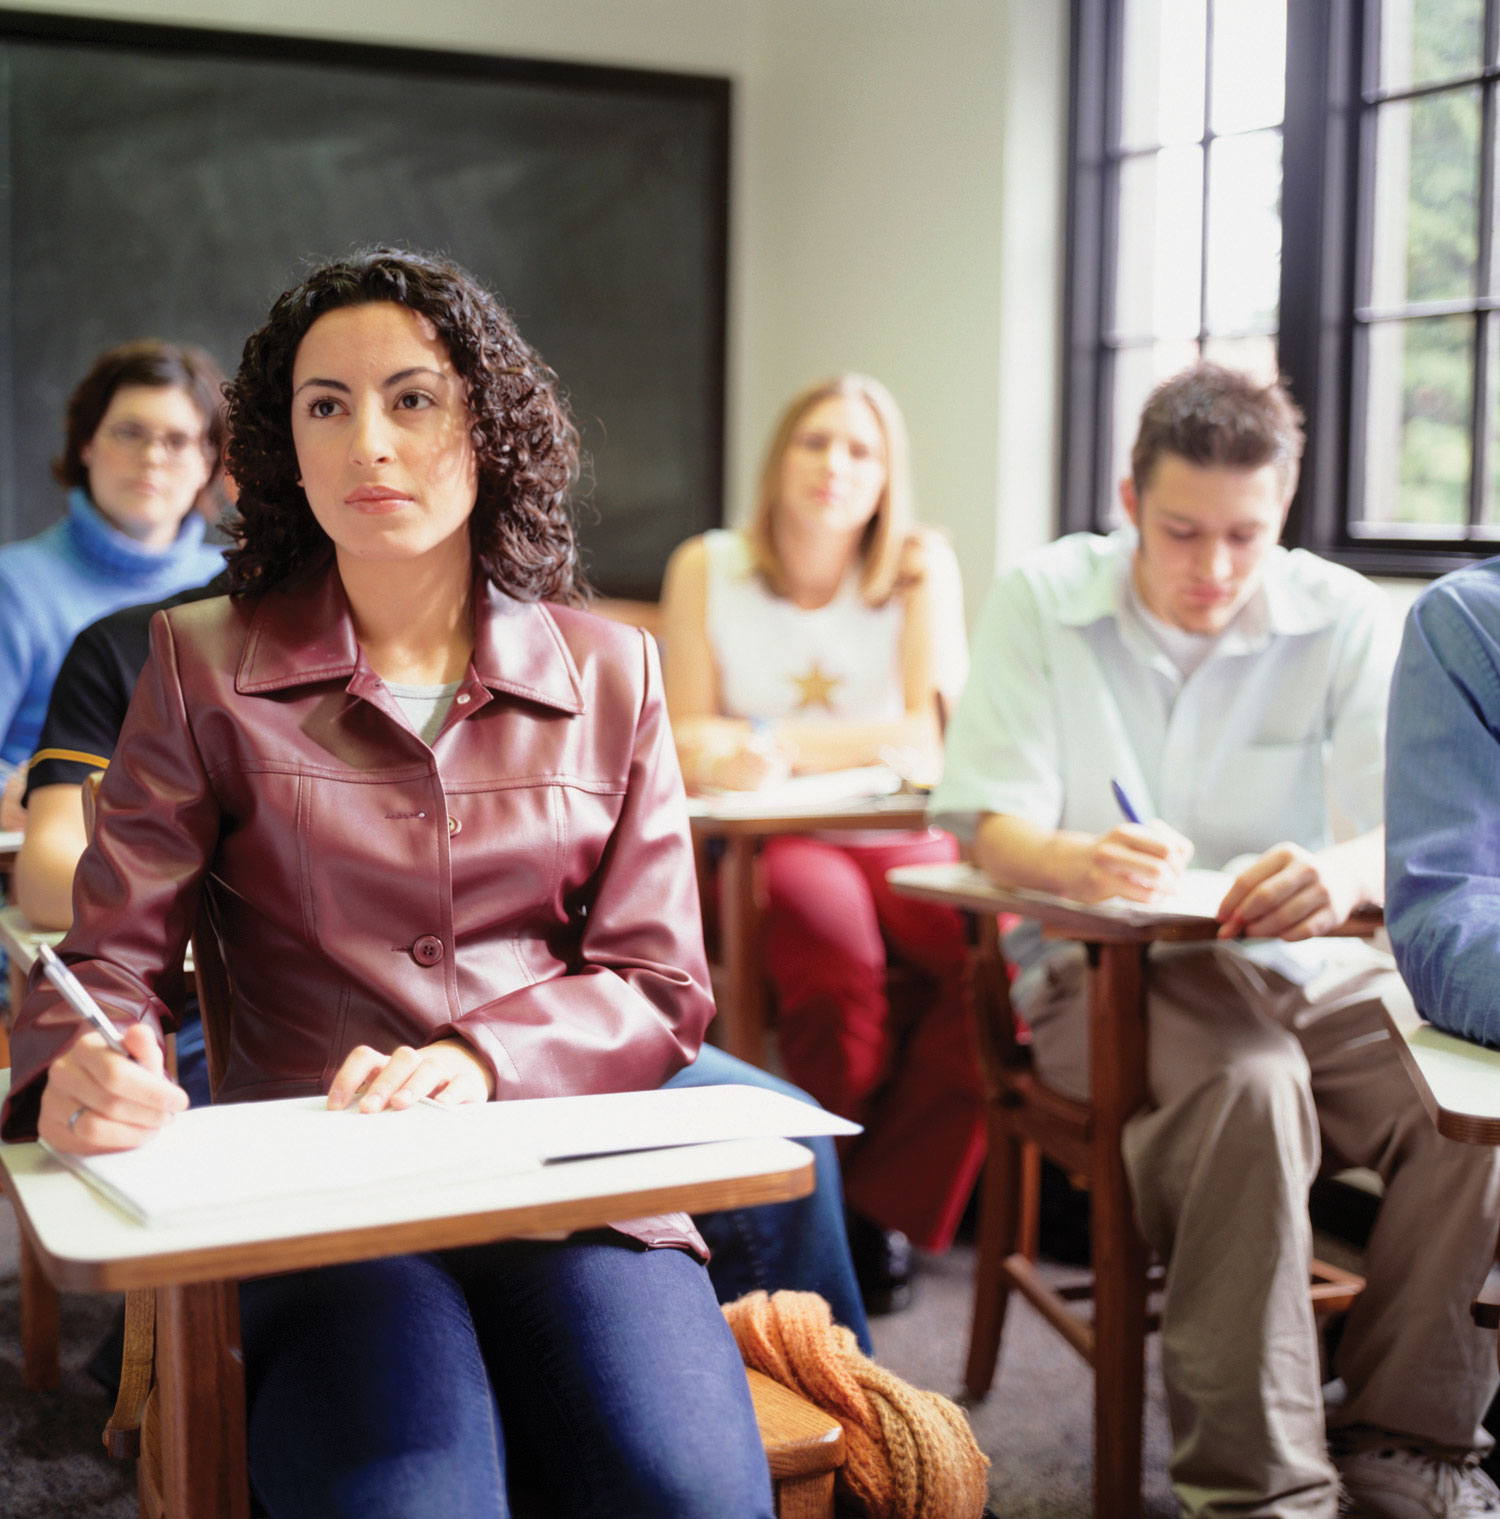 Differences between high school and university essay